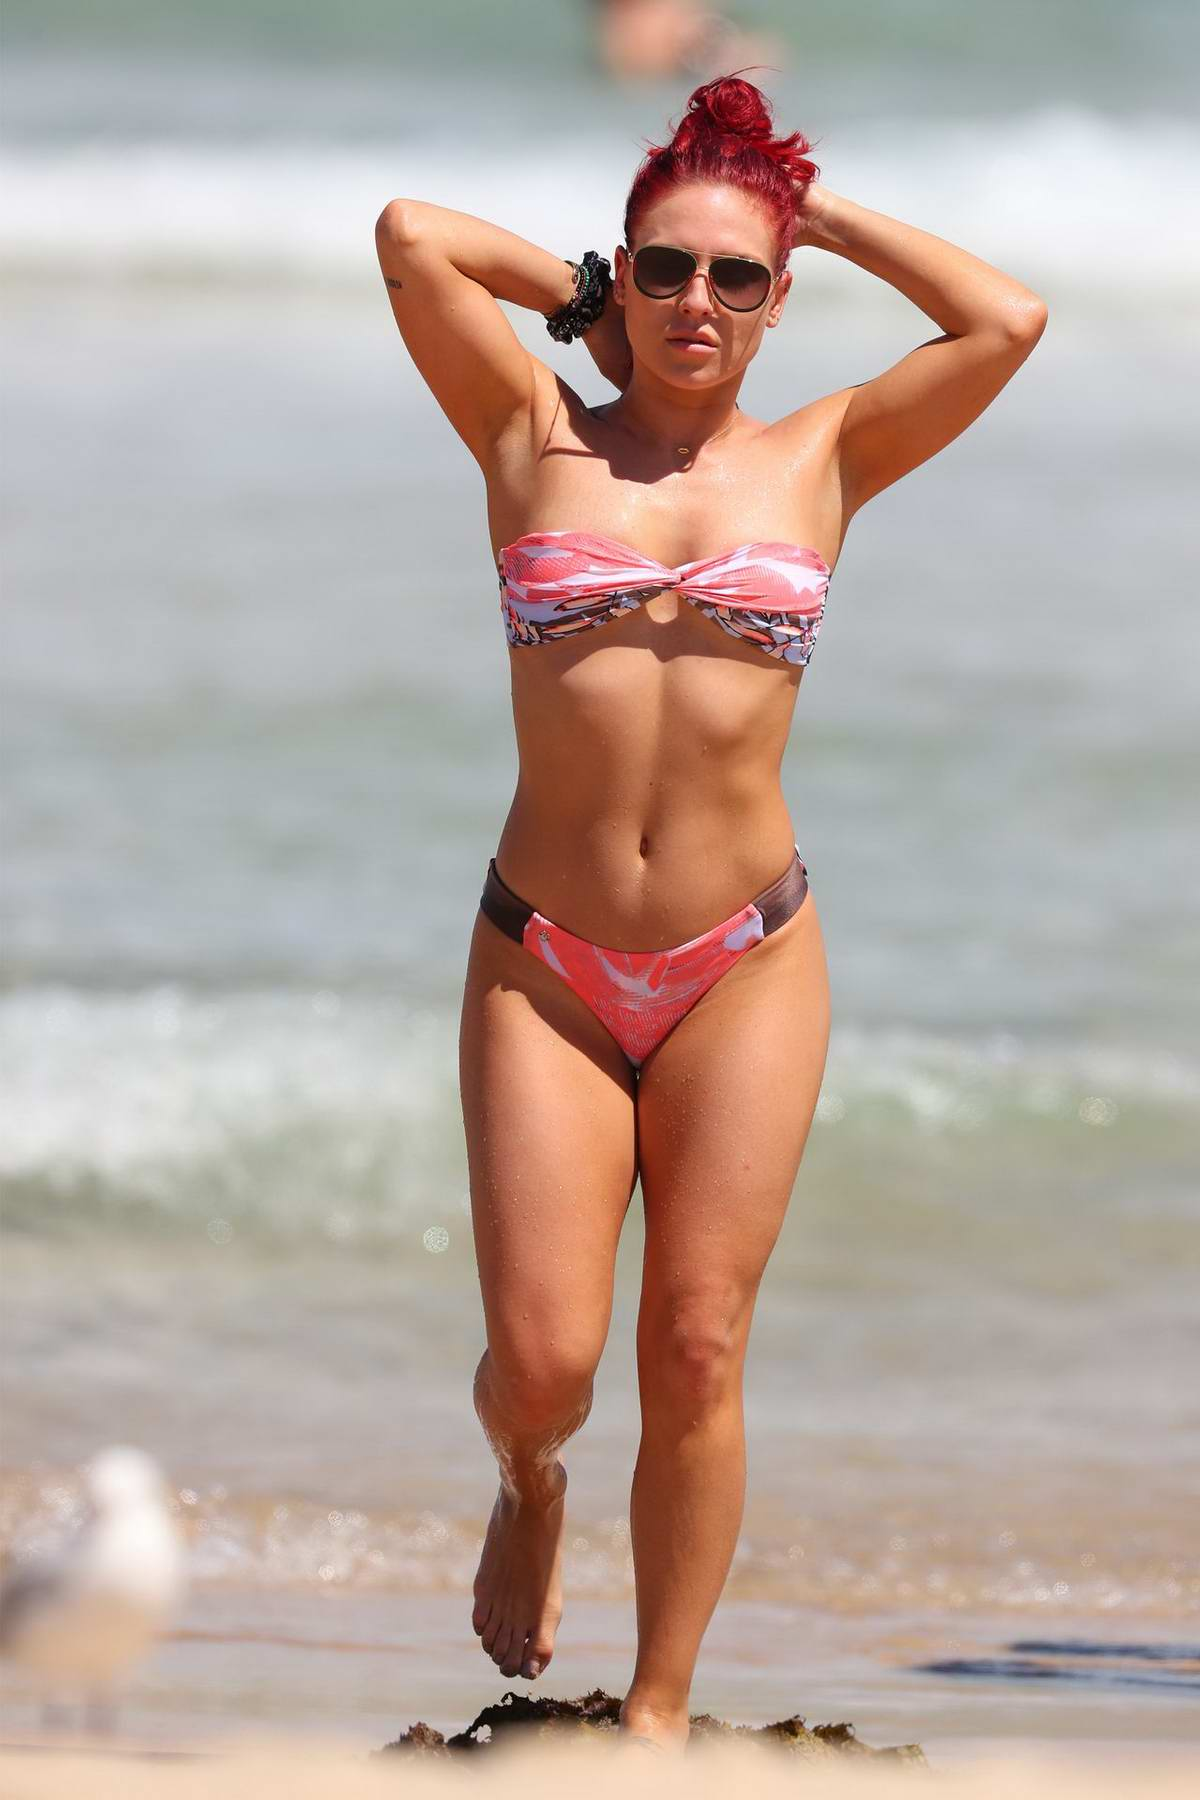 Sharna Burgess shows off her toned body in a pink bikini during a beach day at Bondi Beach in Sydney, Australia